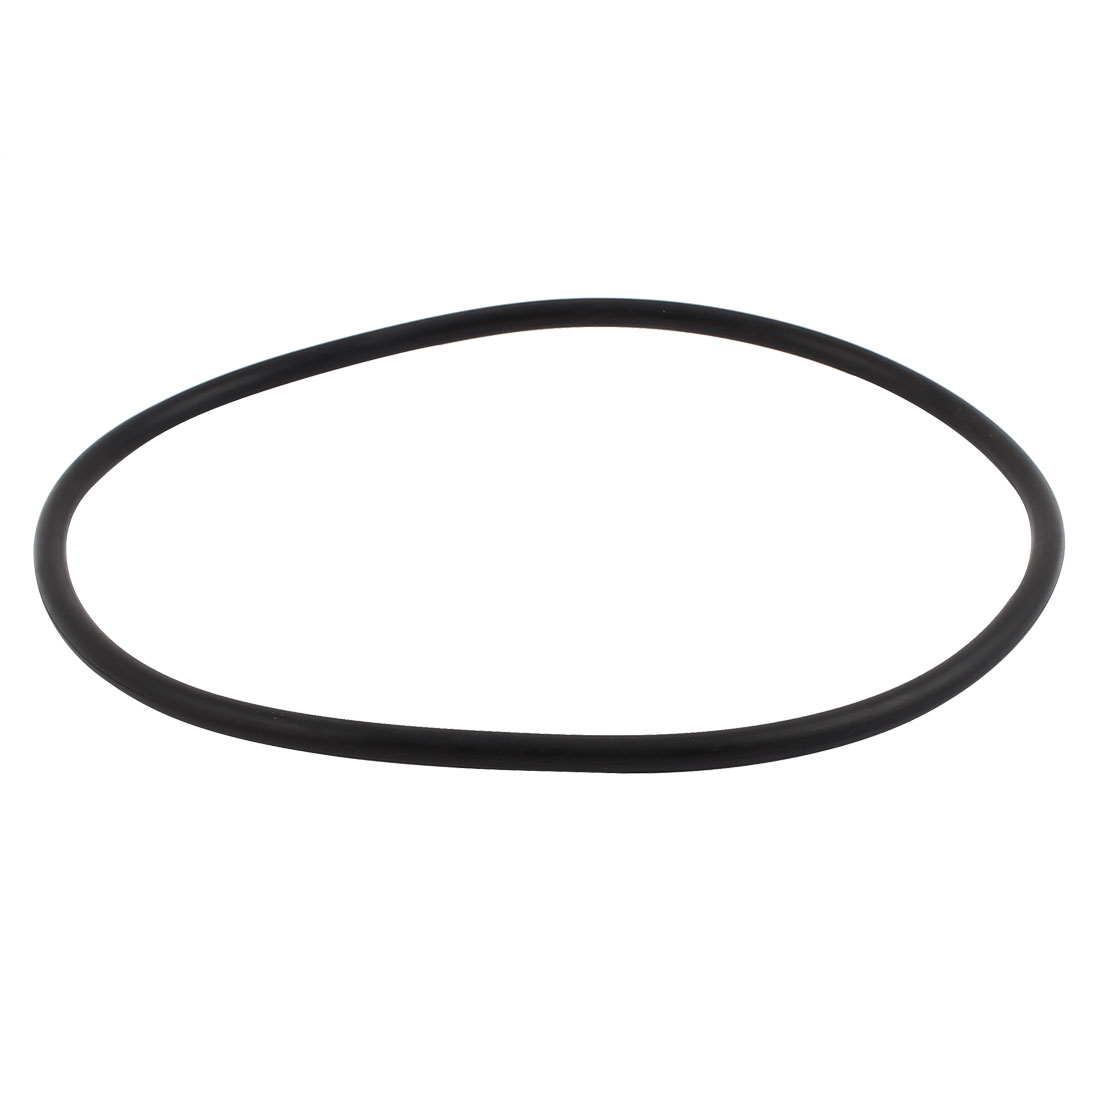 Black Universal O-Ring 250mm x 8.6mm BUNA-N Material Oil Seal Washers Grommets